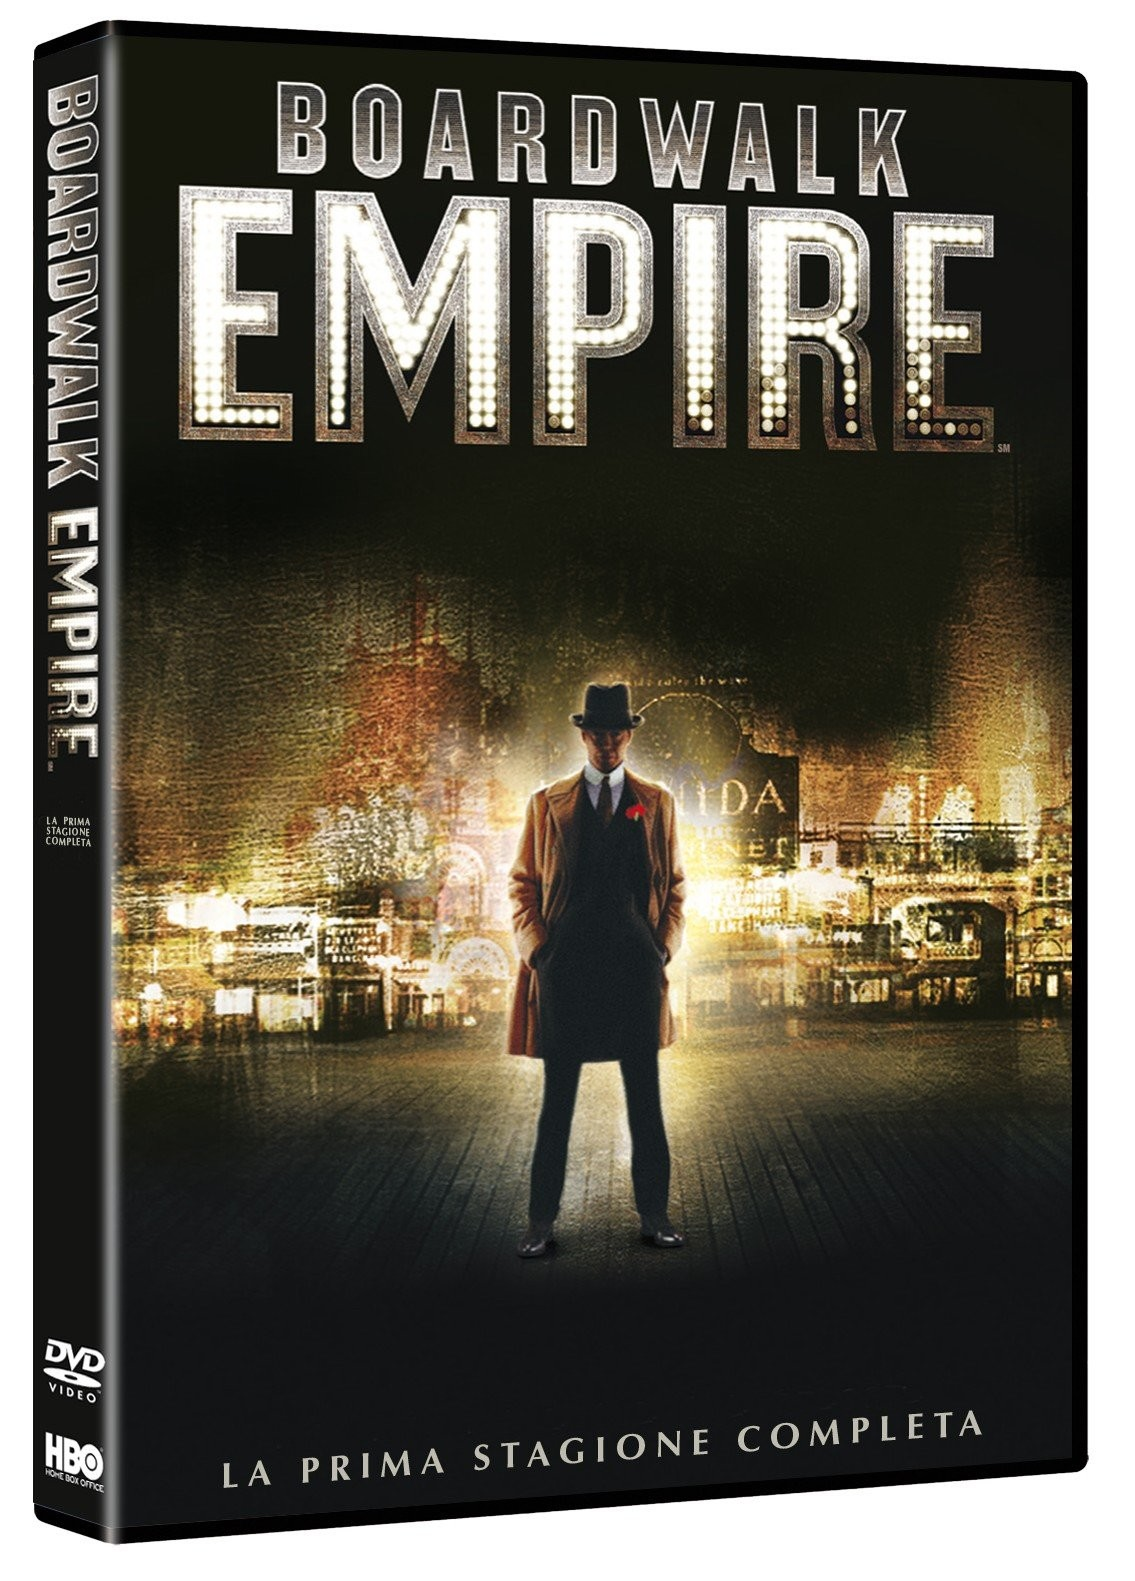 Boardwalk empire, stagione 1, dvd, box